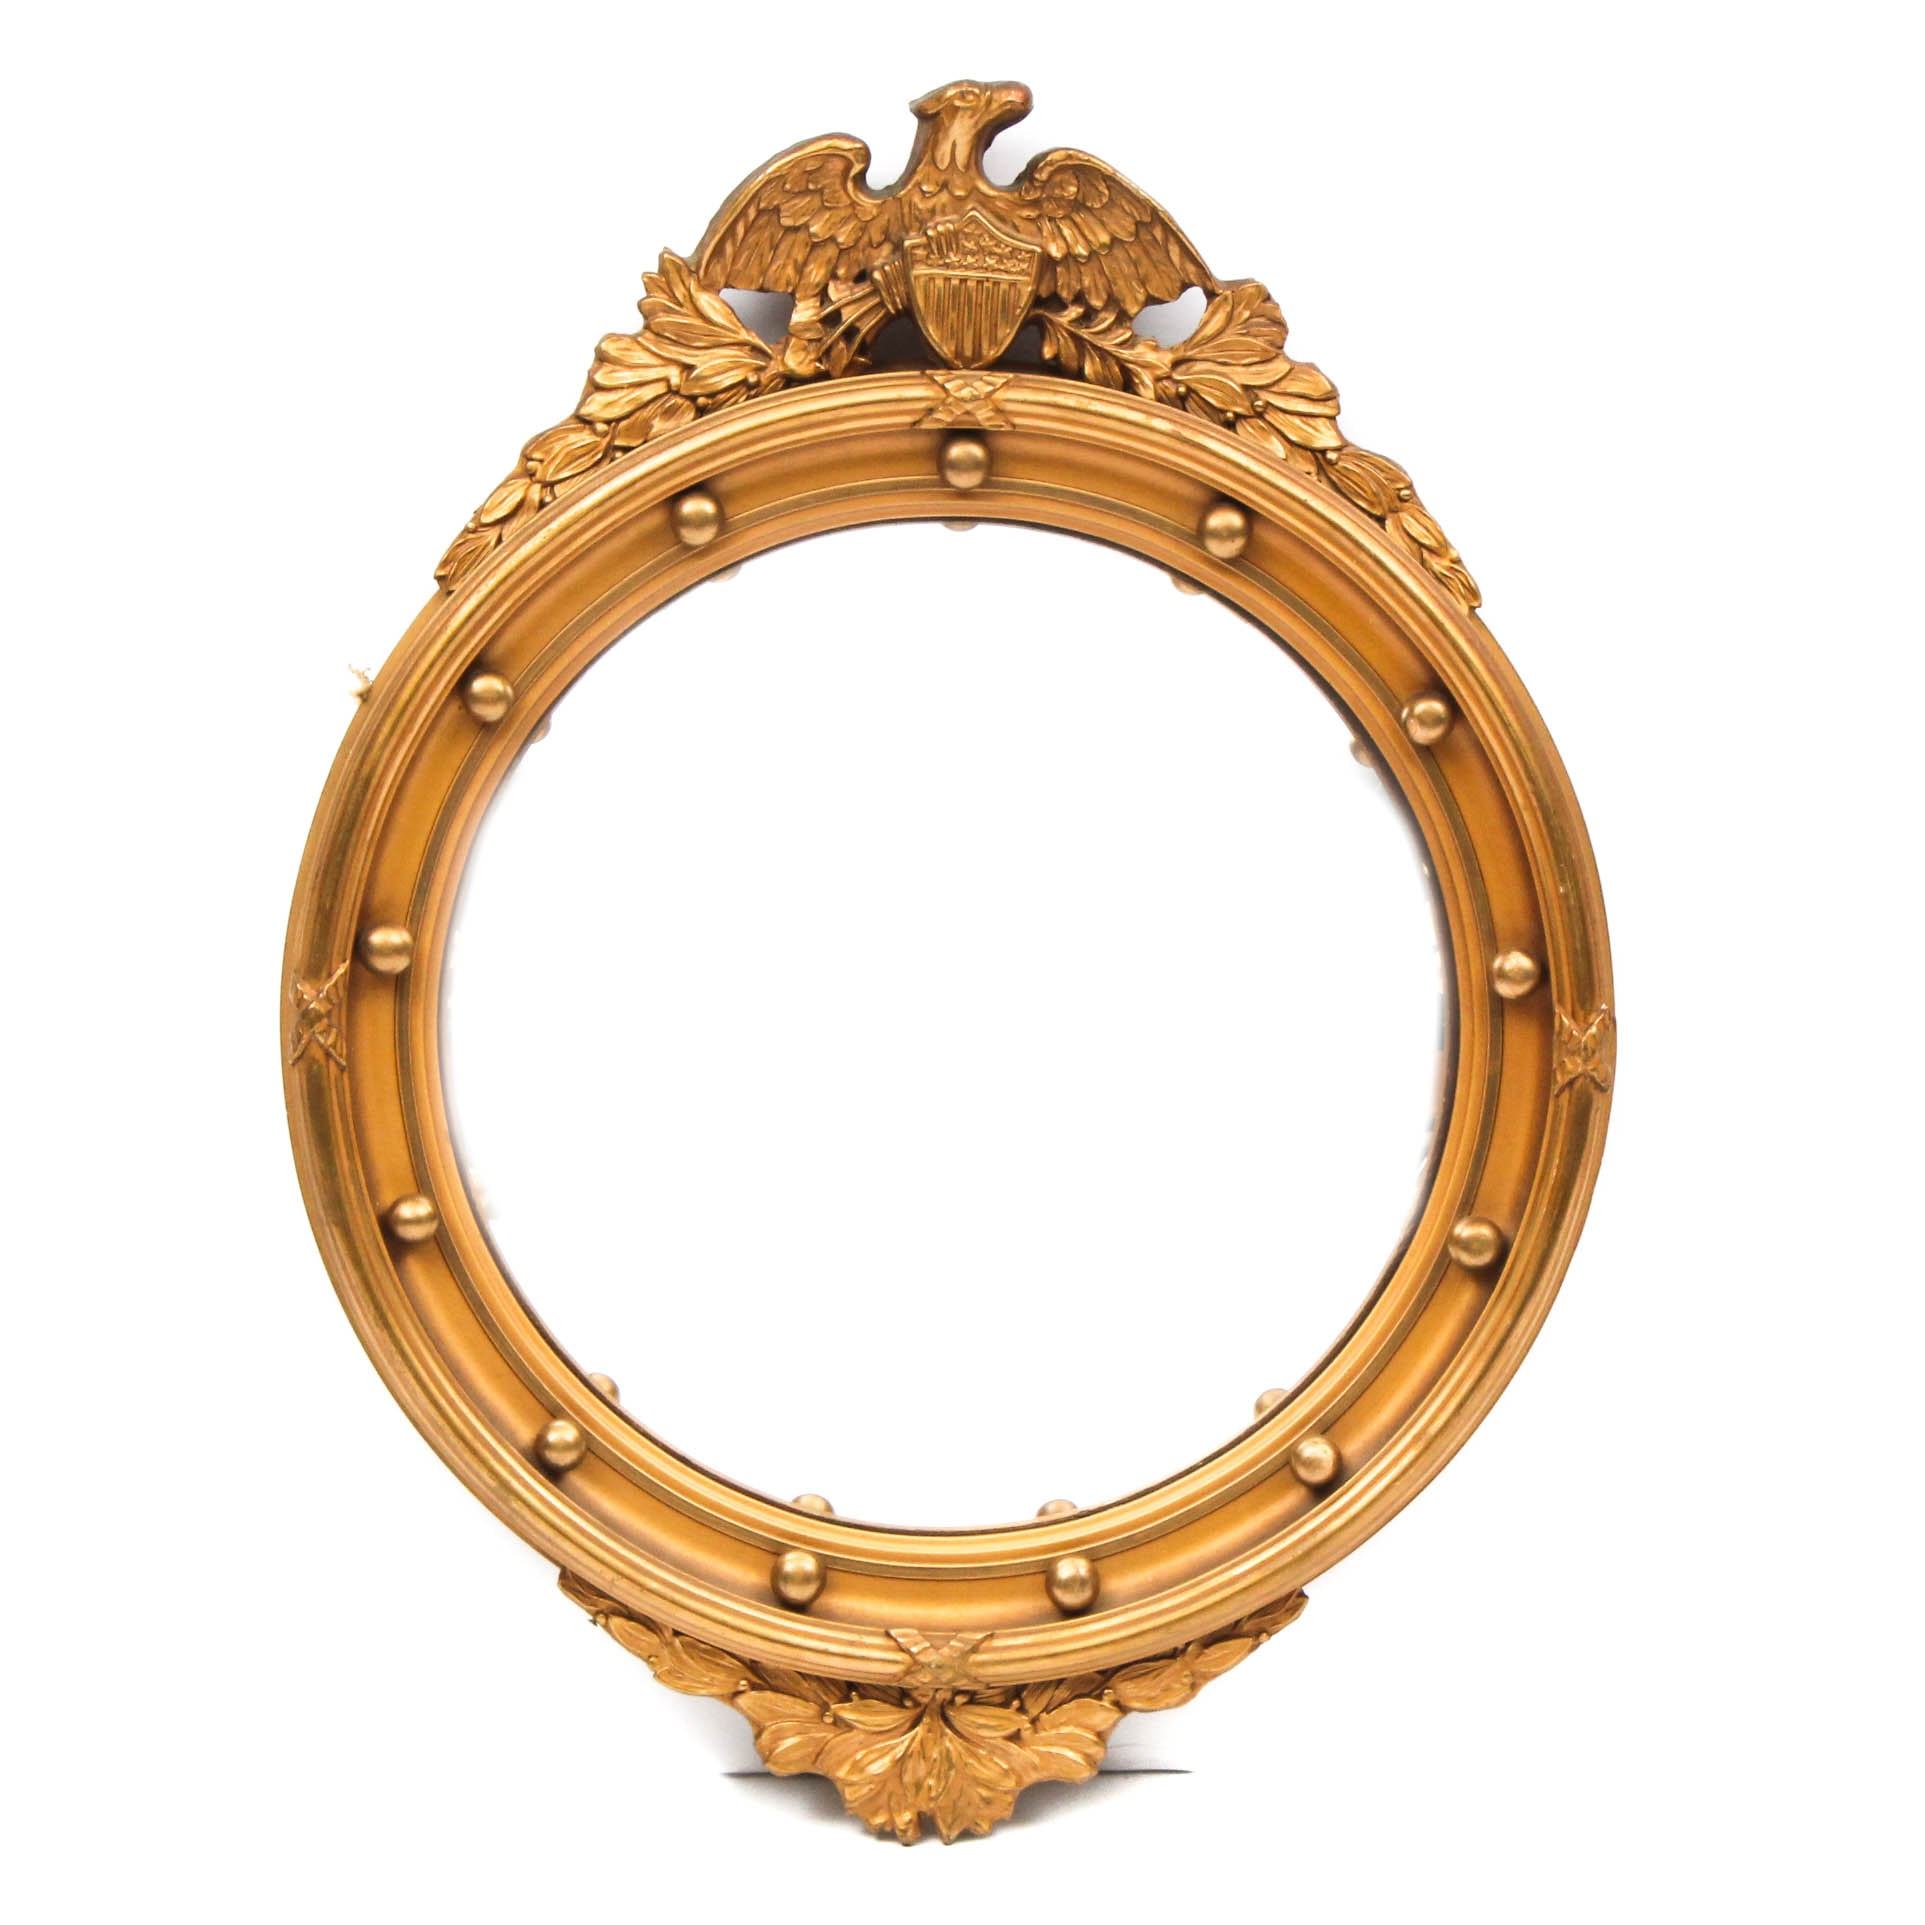 Convex Federal Style Gilt Mirror with Eagle Crest